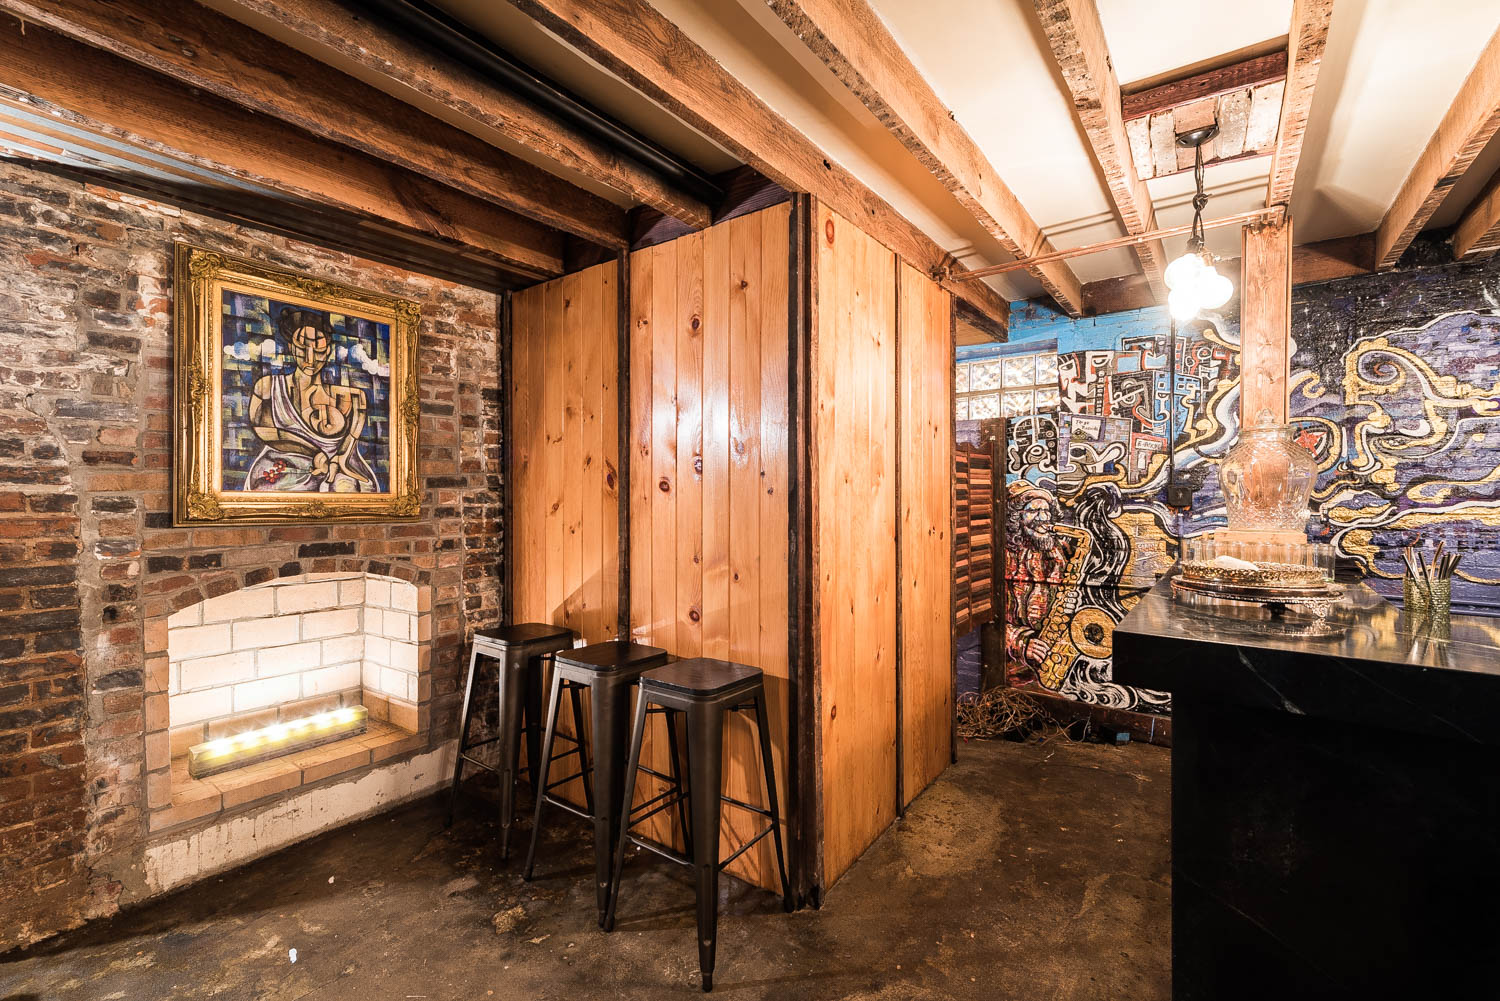 a cozy unnamed wood cabin bar springs up in shaw eater dc